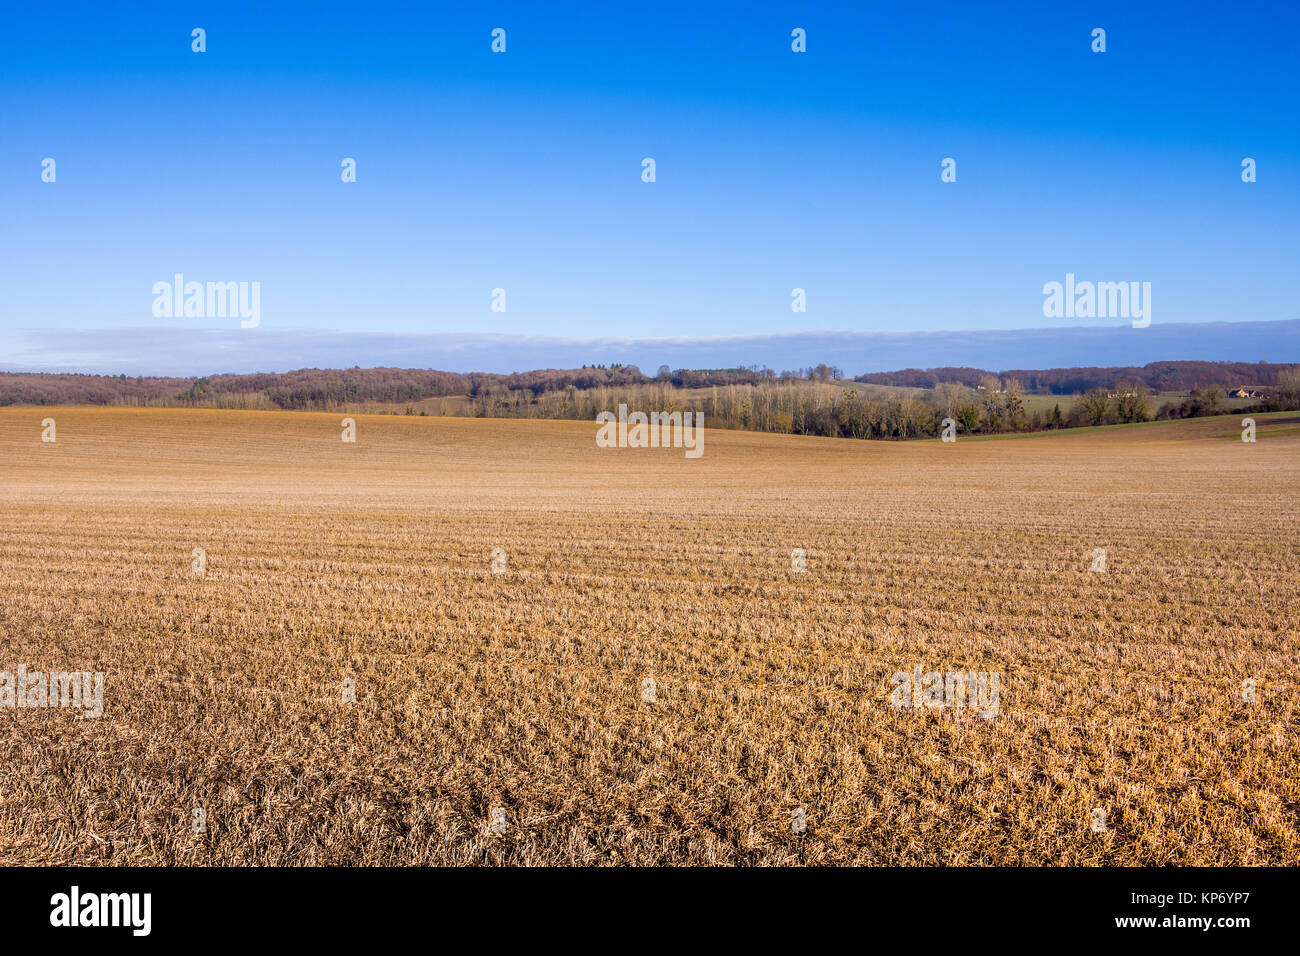 Lucerne / Alfalfa crop after third harvest becomes 'green manure' - France. - Stock Image